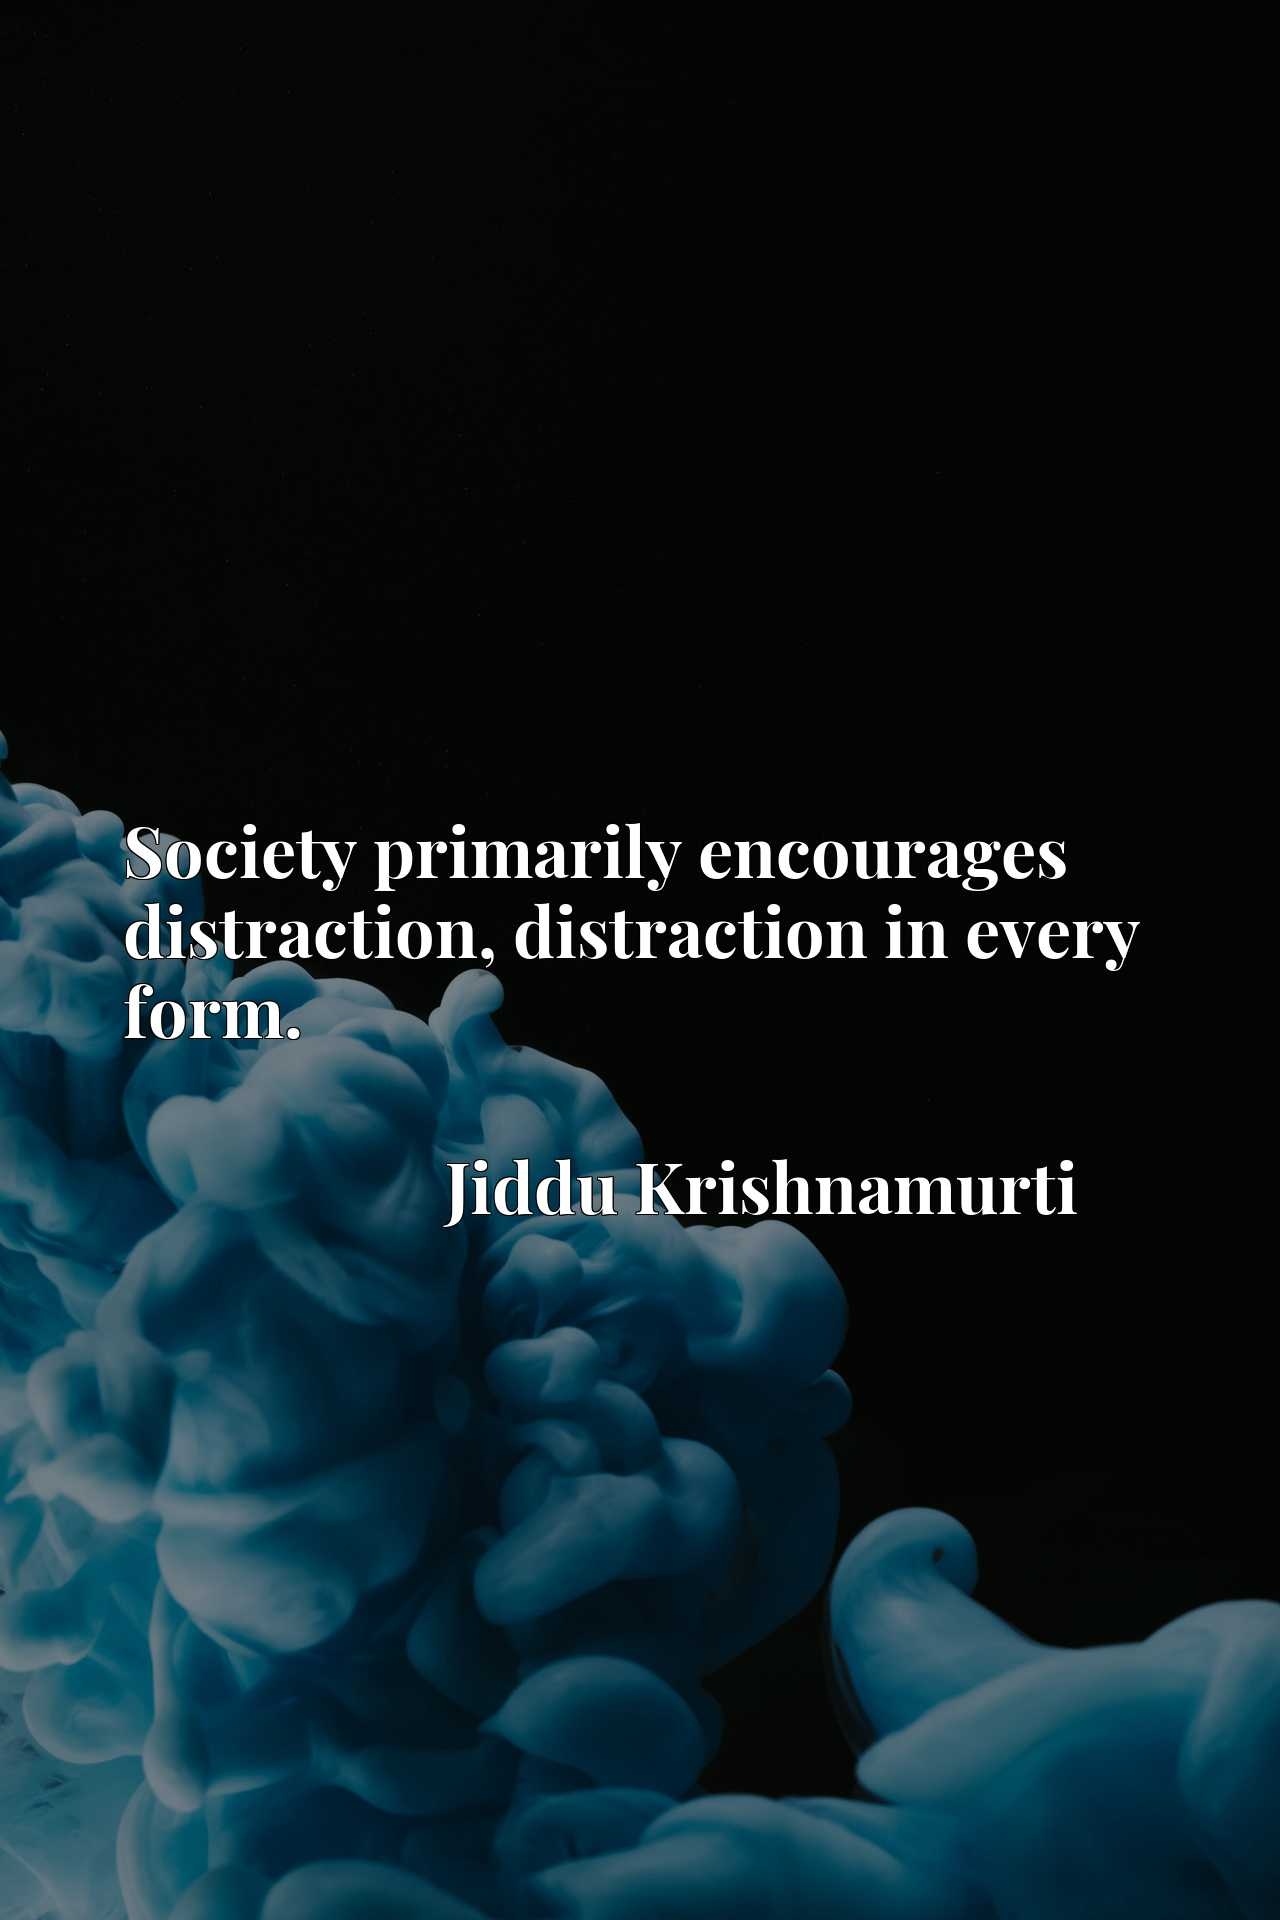 Society primarily encourages distraction, distraction in every form.